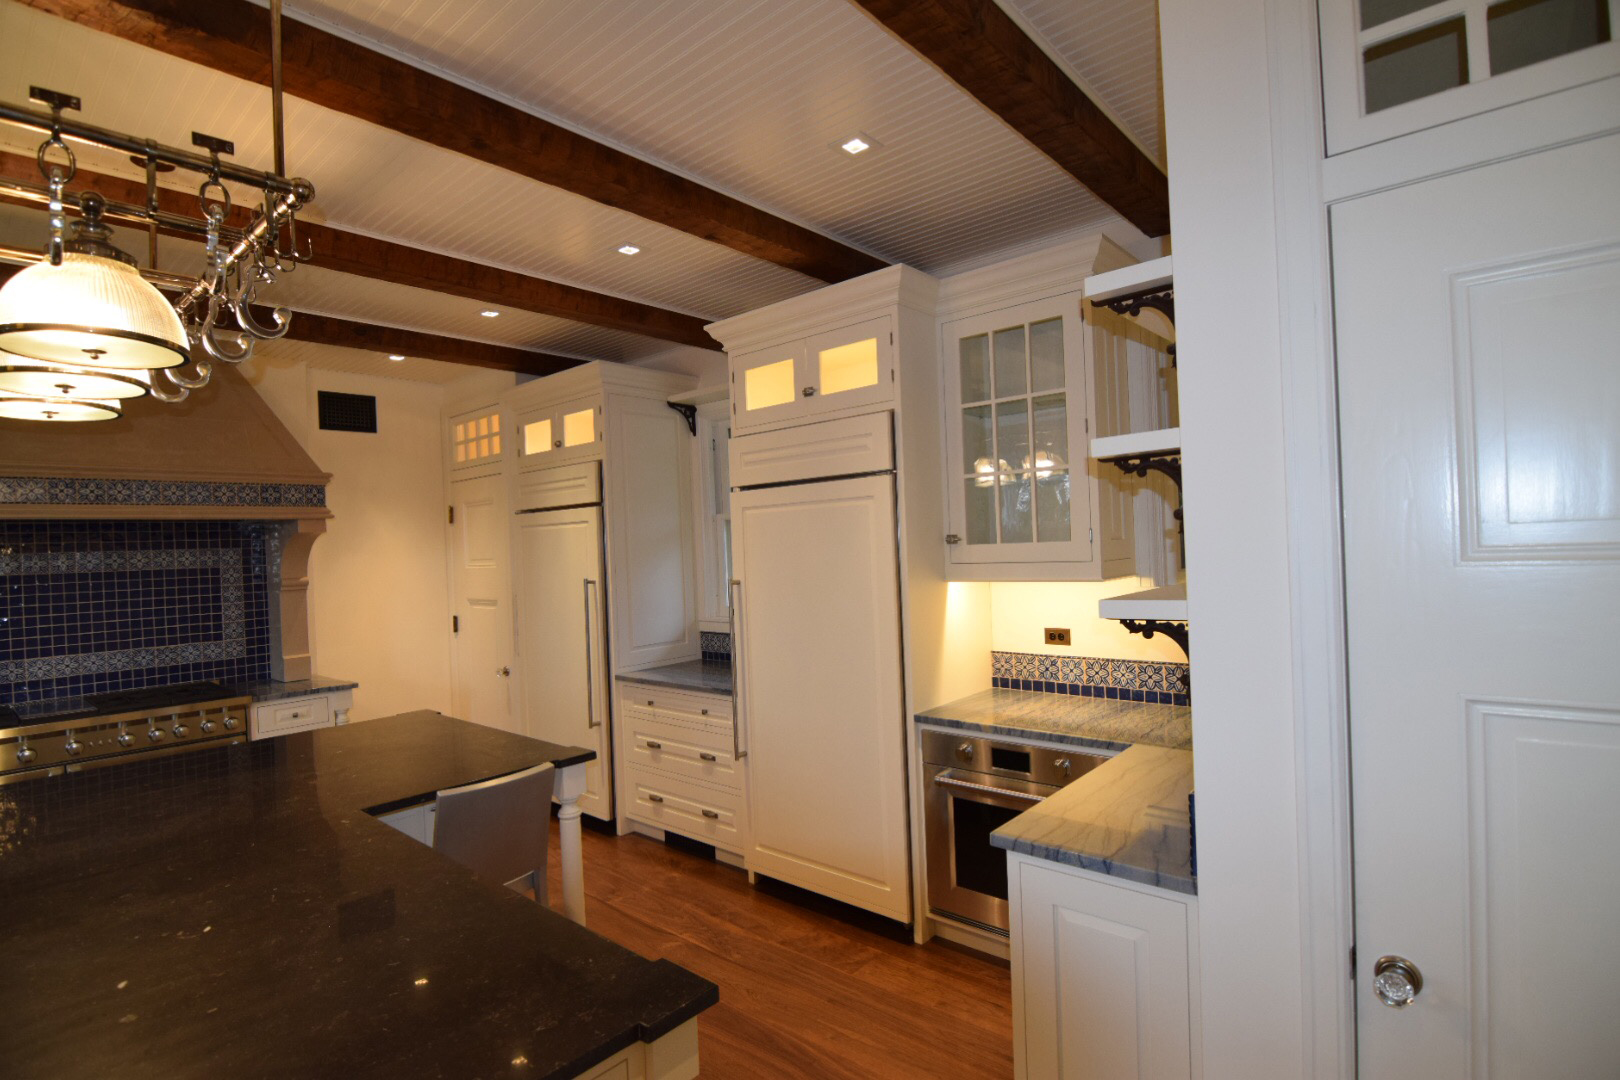 custom-white-lacquer-kitchen-with-hard-maple-face-frame-cabinetry-with-inset-doors-and-raised-panels-2.jpg